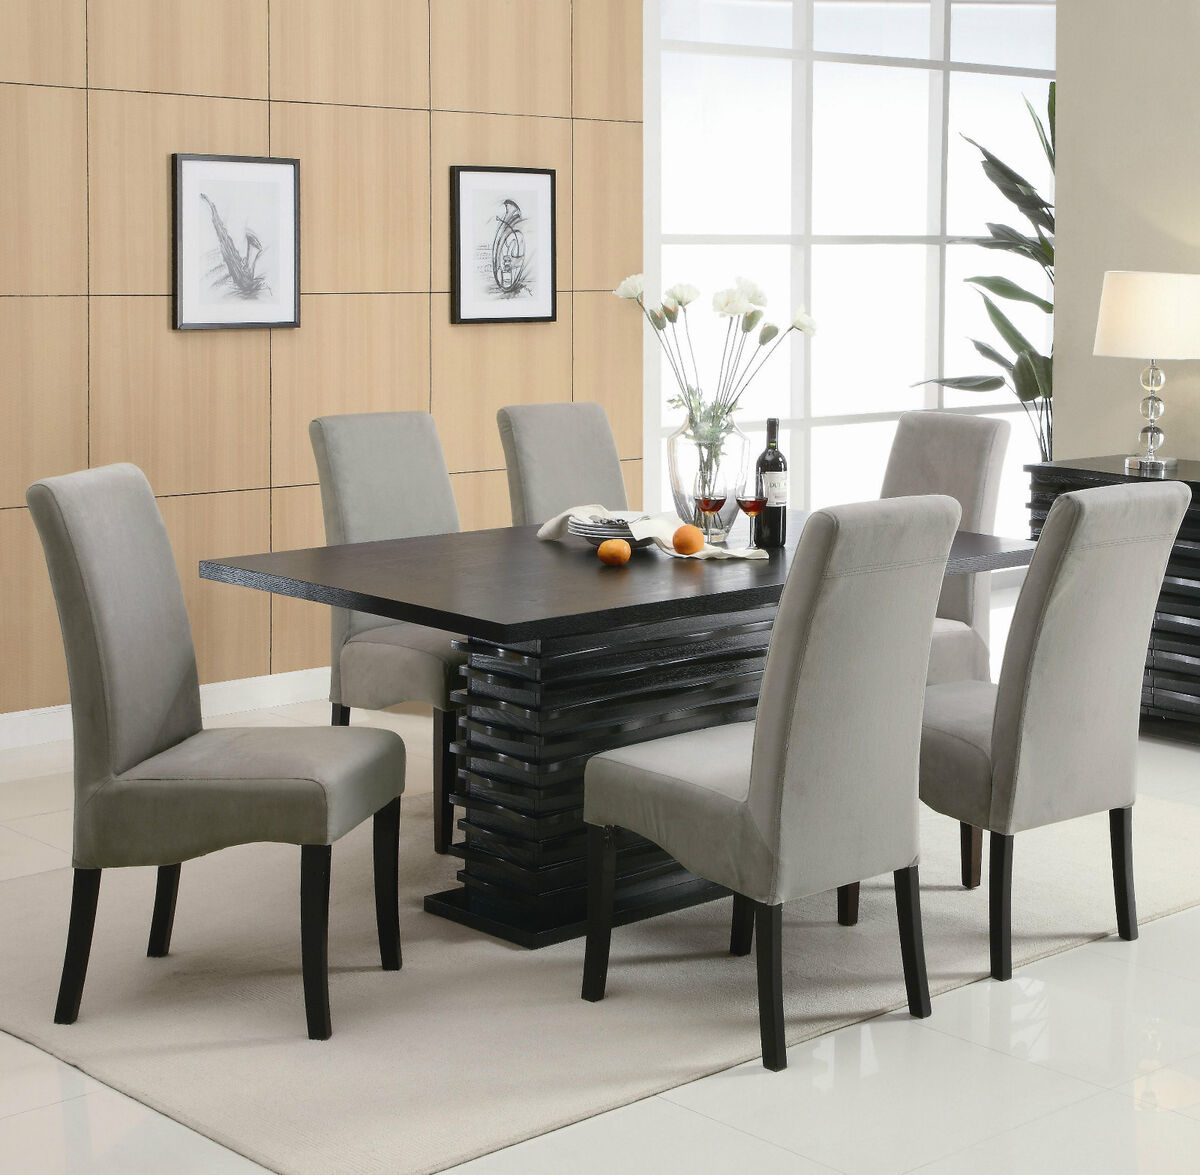 Dining table furniture contemporary dining table chairs for Pictures of dining room tables